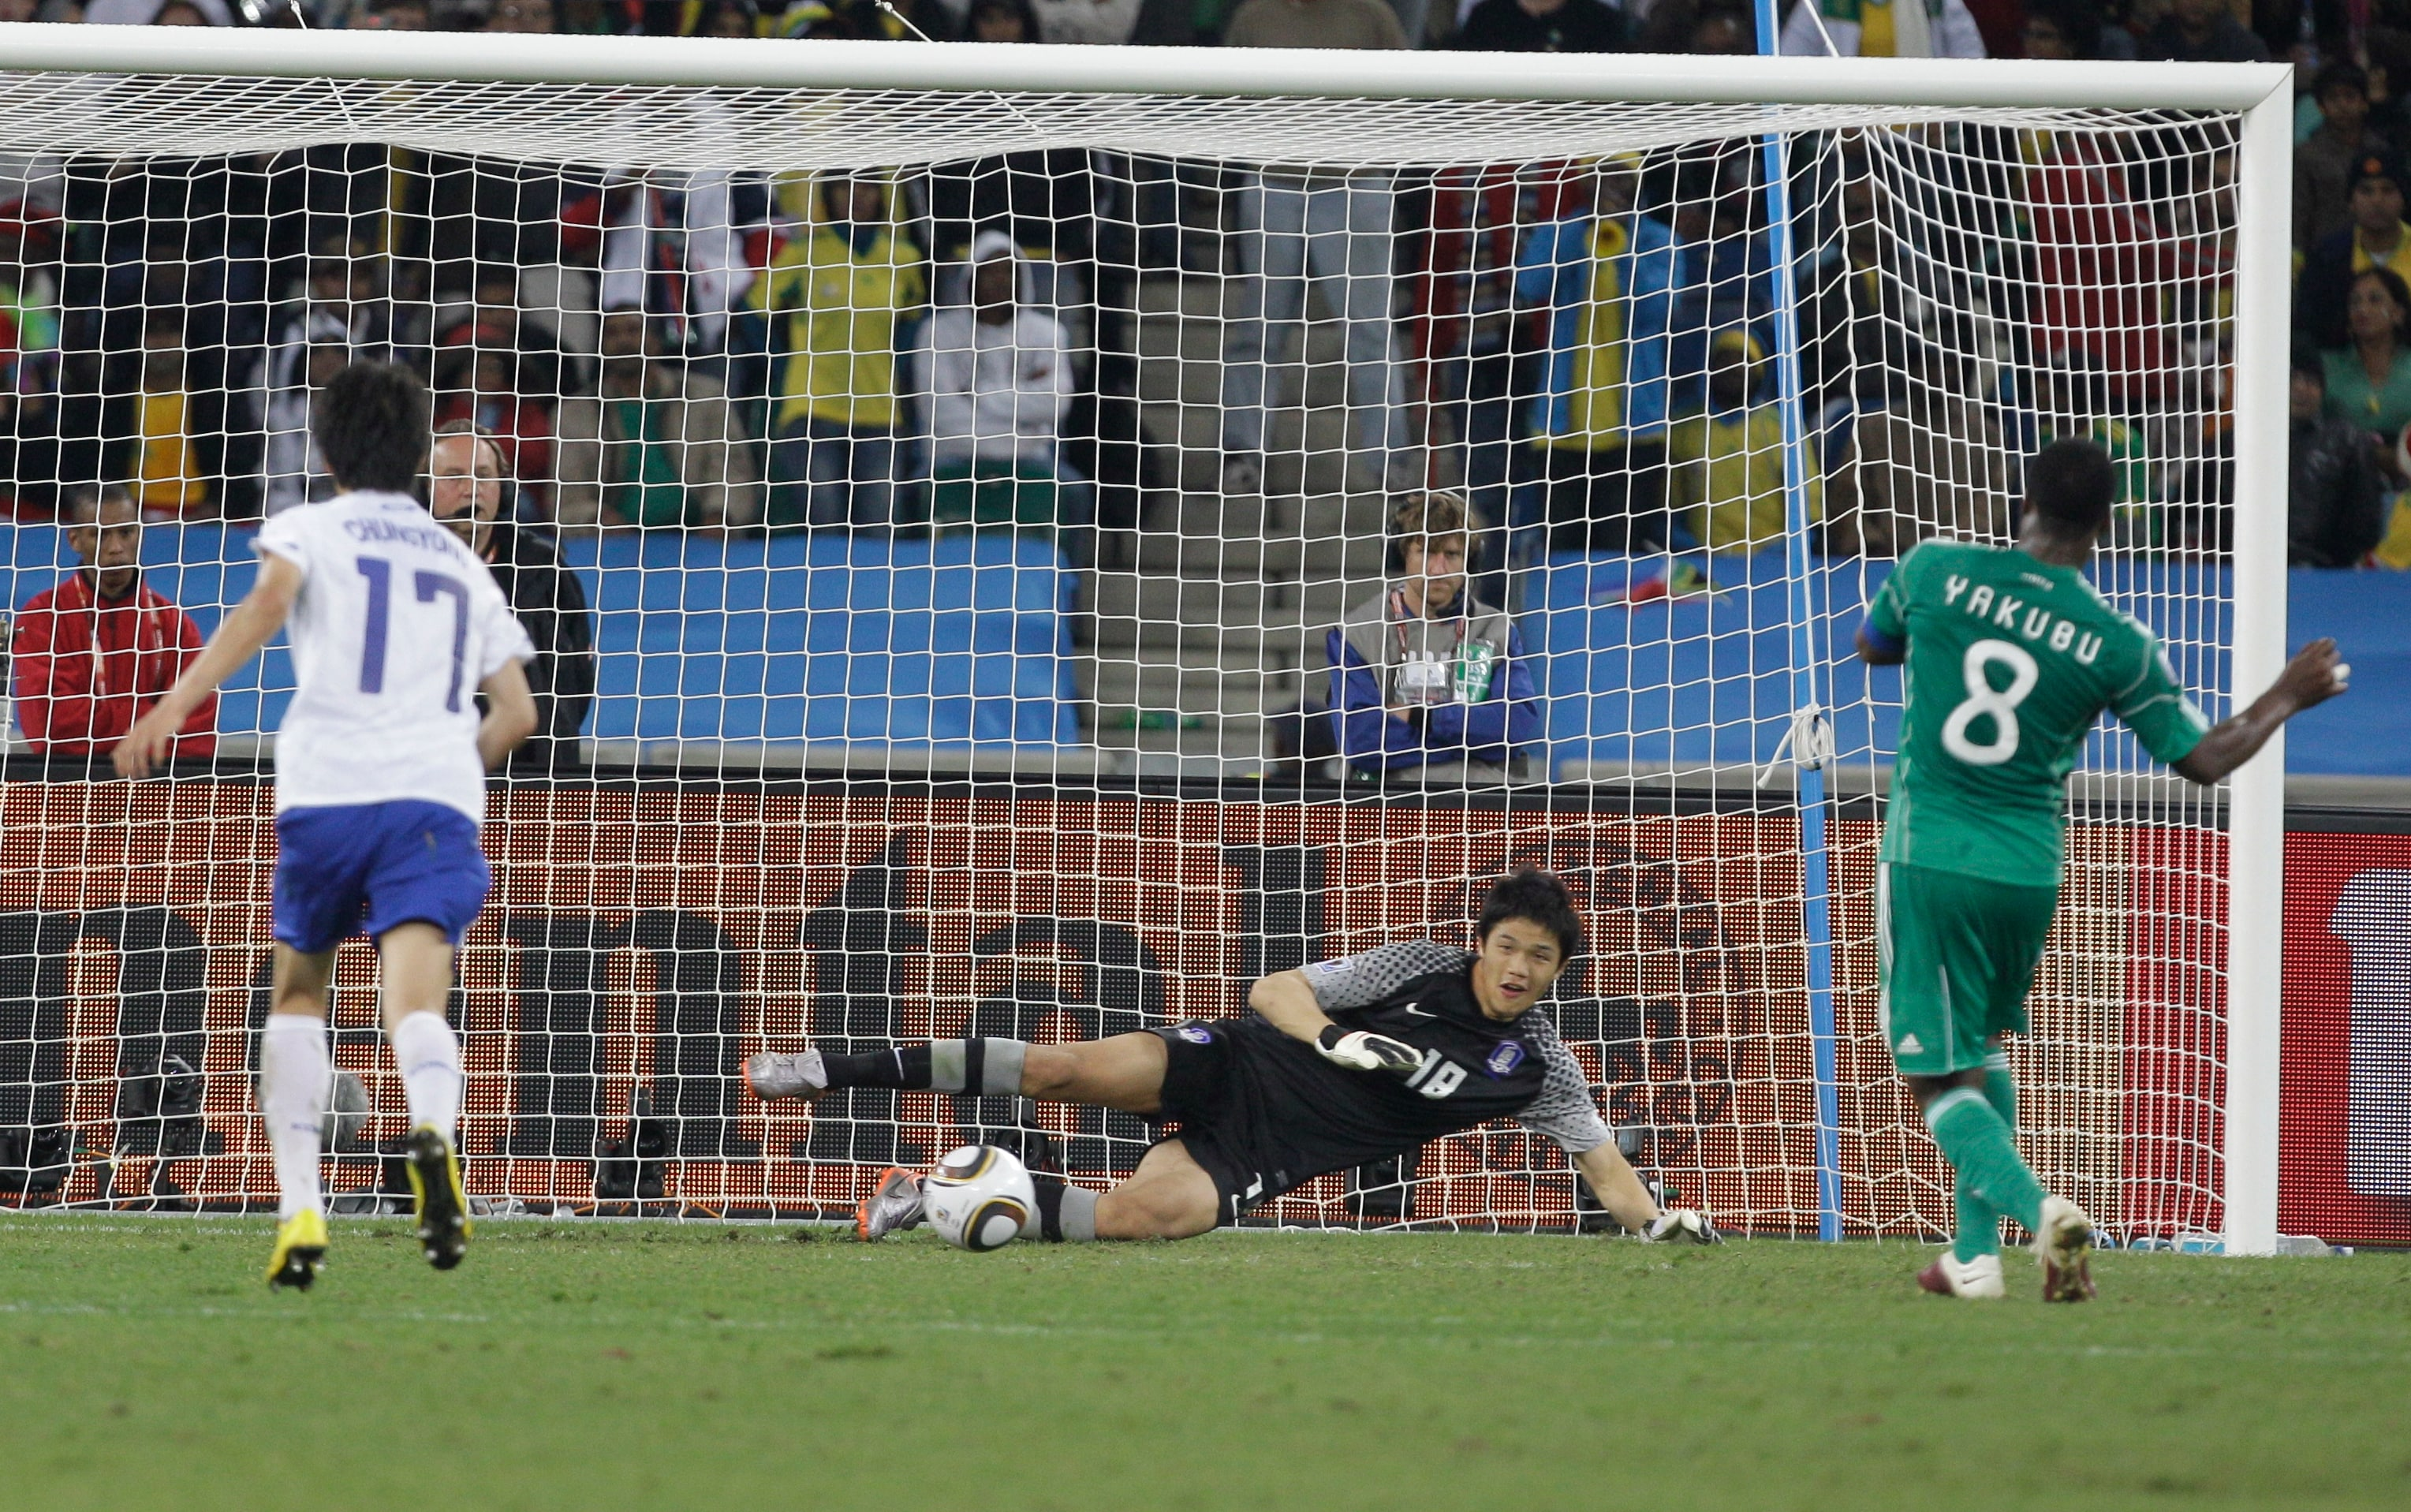 The Nigerian 'Super Eagles' have ceased to be the dominating force in Africa and their listless performance in the this edition of the World Cup is a paragon of their demise.<br><br> This miss from striker Yakubu is representative of the poor show that the Nigerians put up in Africa's first ever World Cup.<br><br> Miserable is an understatement.